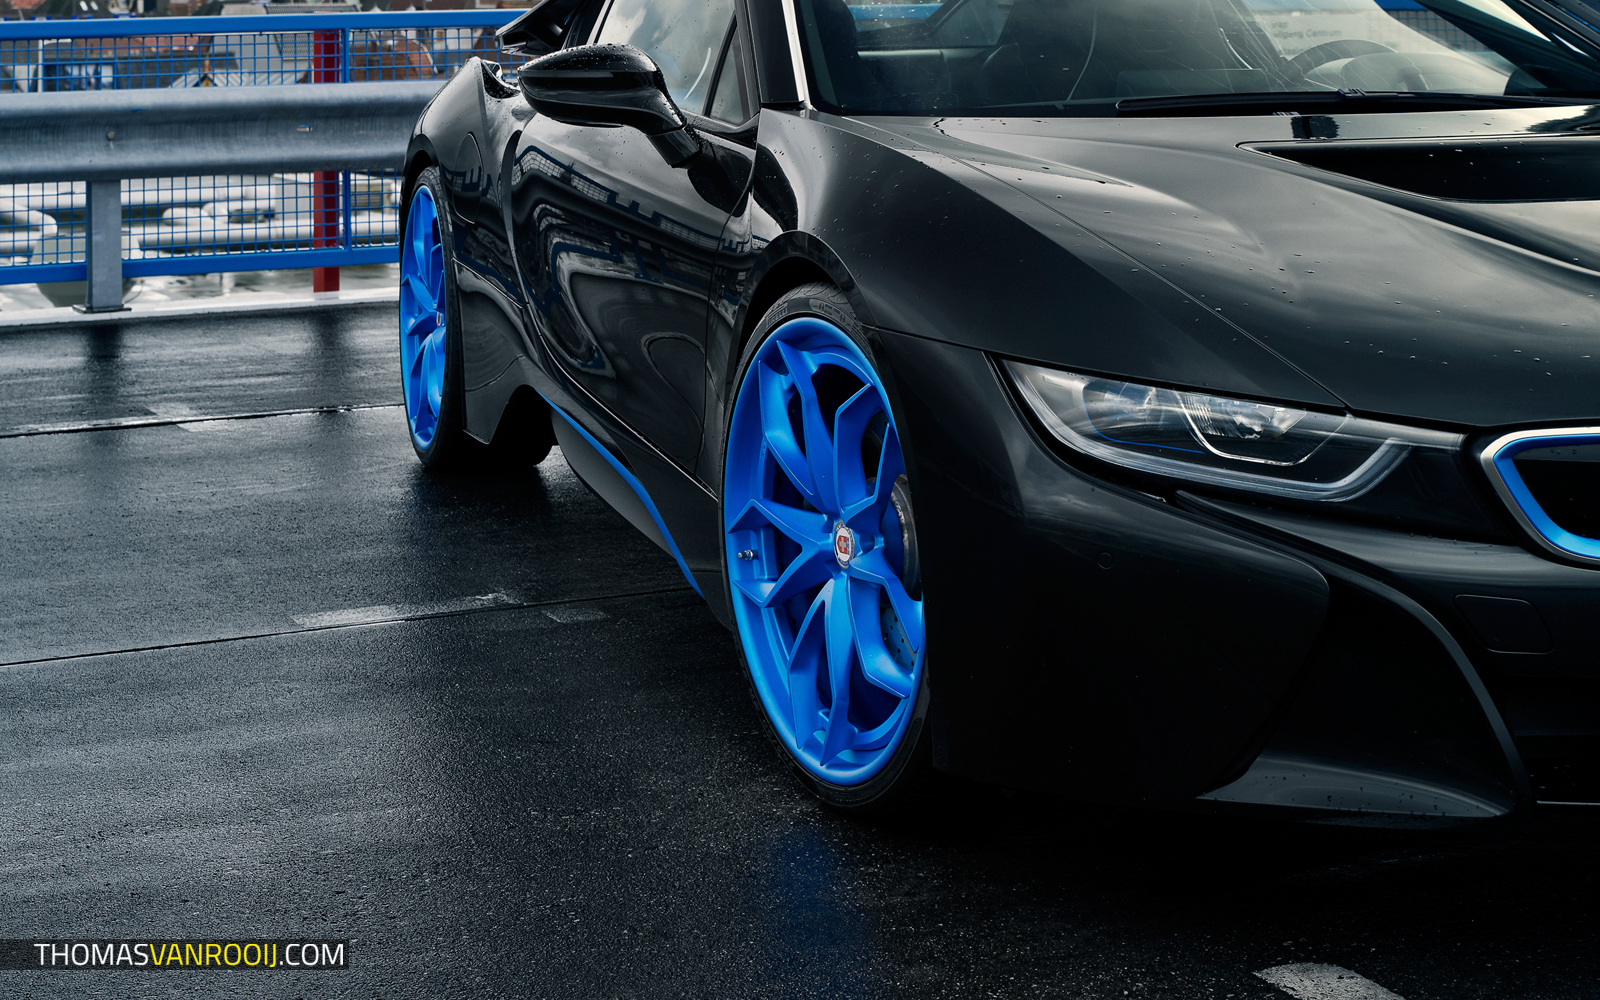 7_Thomas van Rooij Photography Fotografie BMW i8